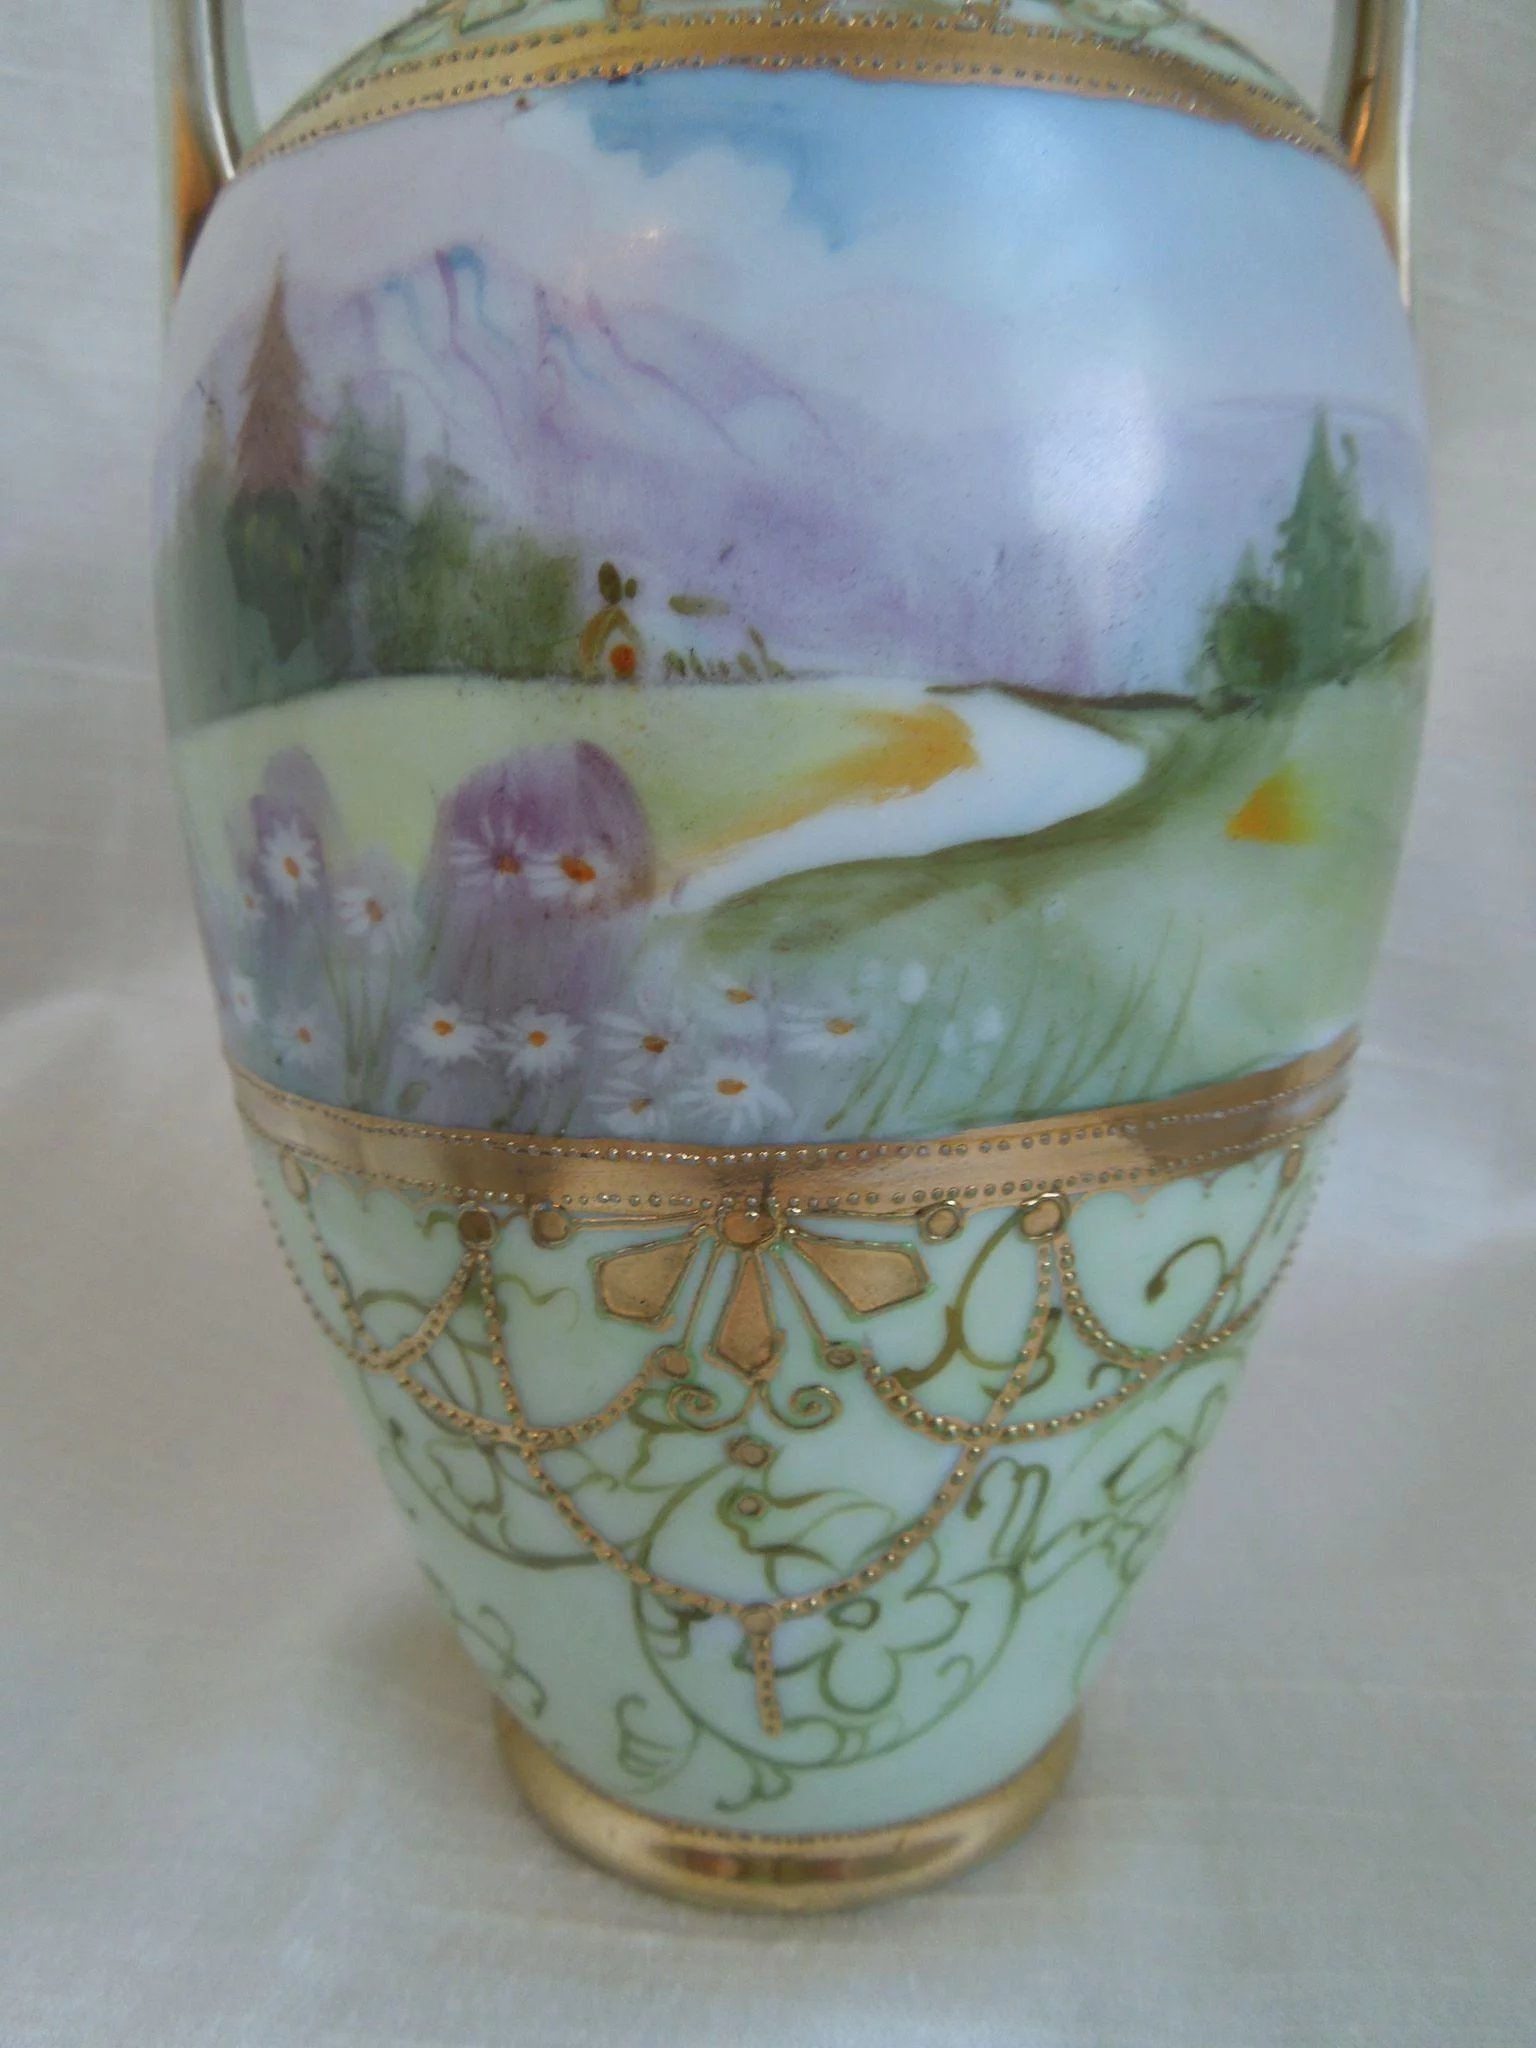 Nippon hand painted porcelain vase with landscape scene gilt work nippon hand painted porcelain vase with landscape scene gilt work click to expand reviewsmspy